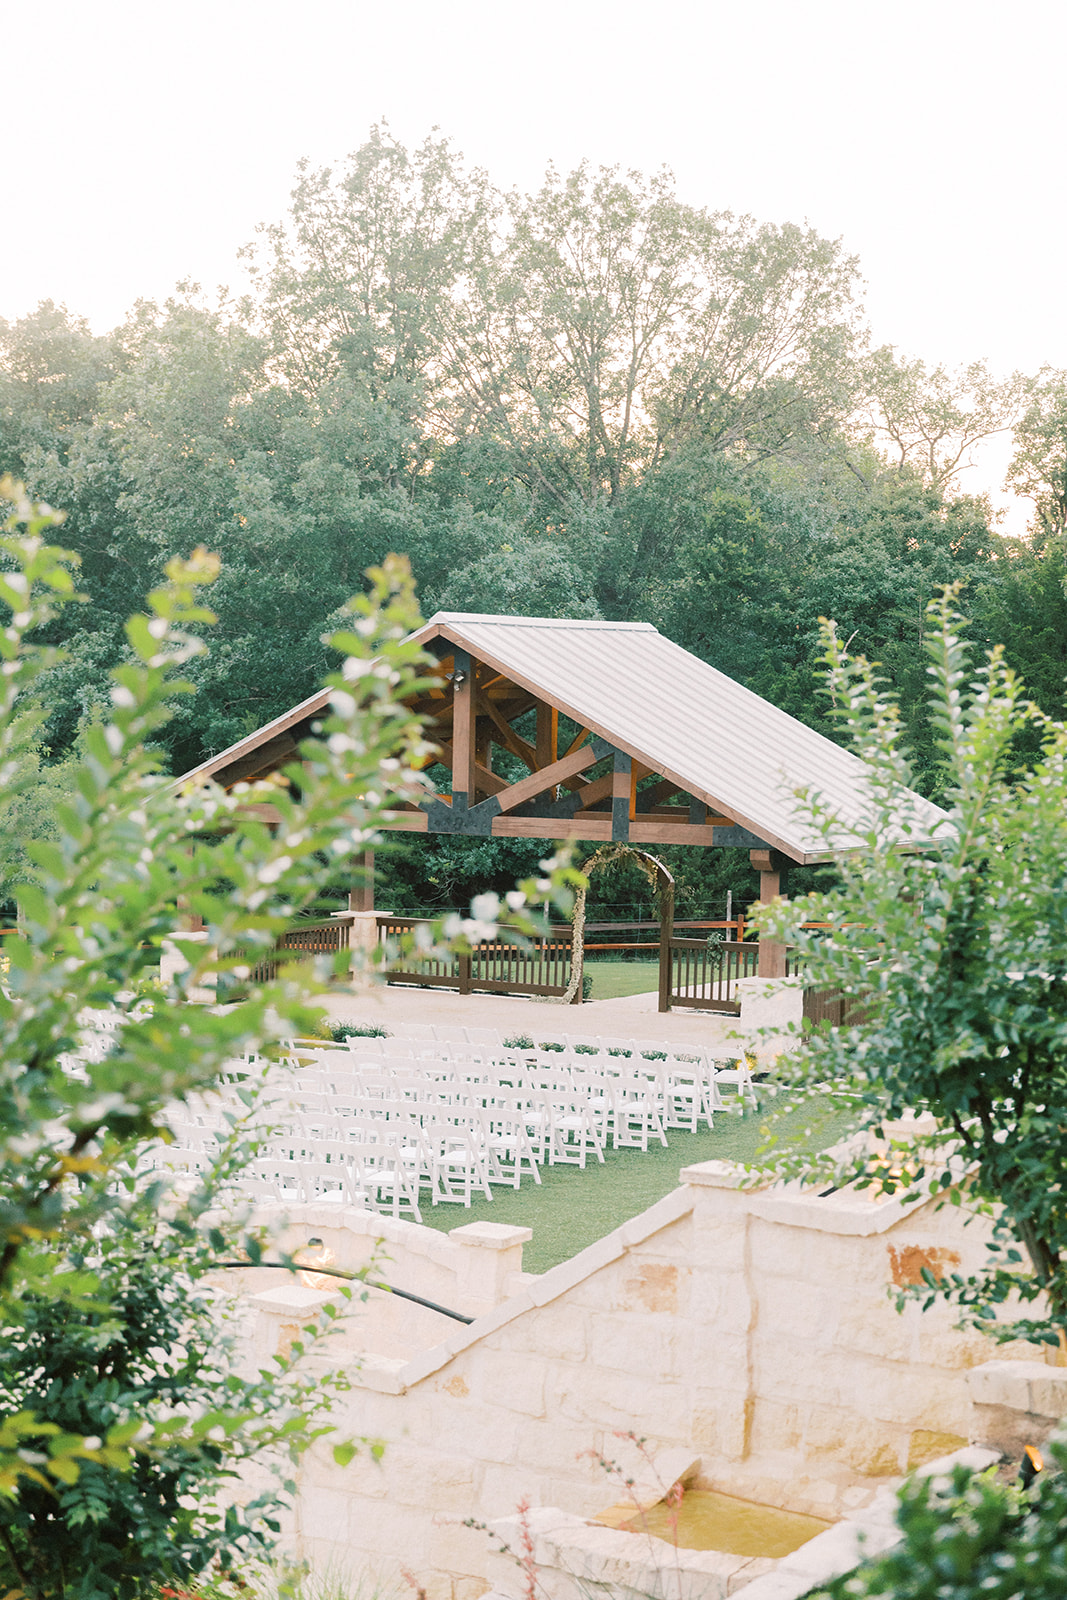 Springs Venue Wedding Ceremony: | Romantic blue Texas wedding at Spring Venue by Alexa Kay Events